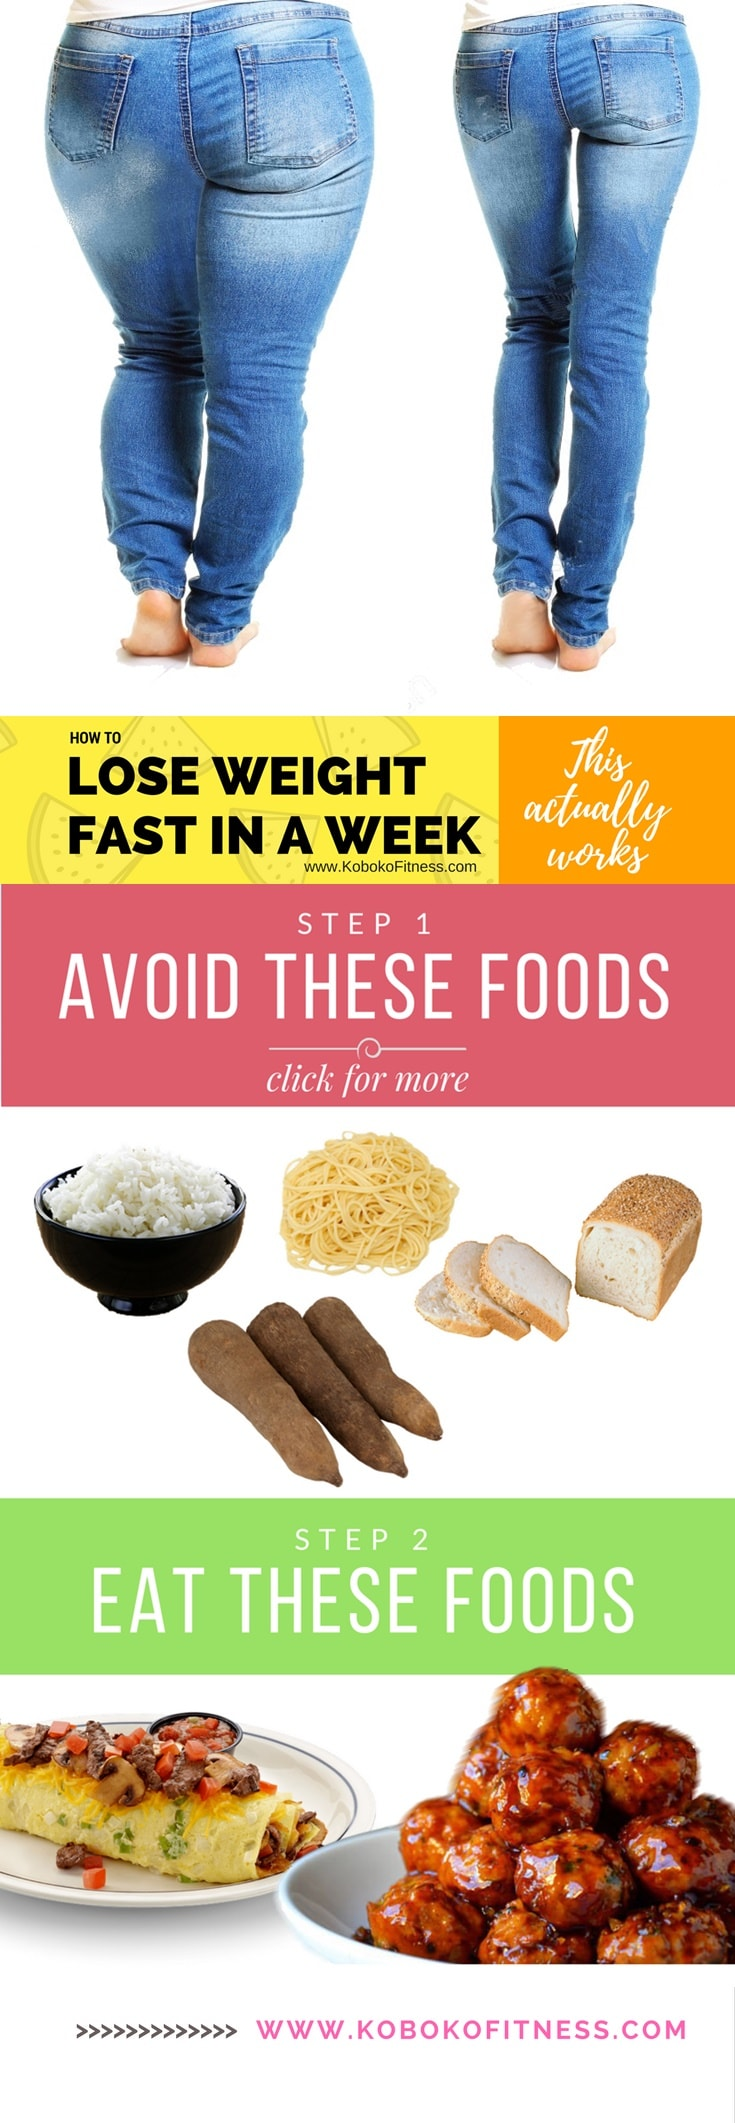 how to lose weight free and fast